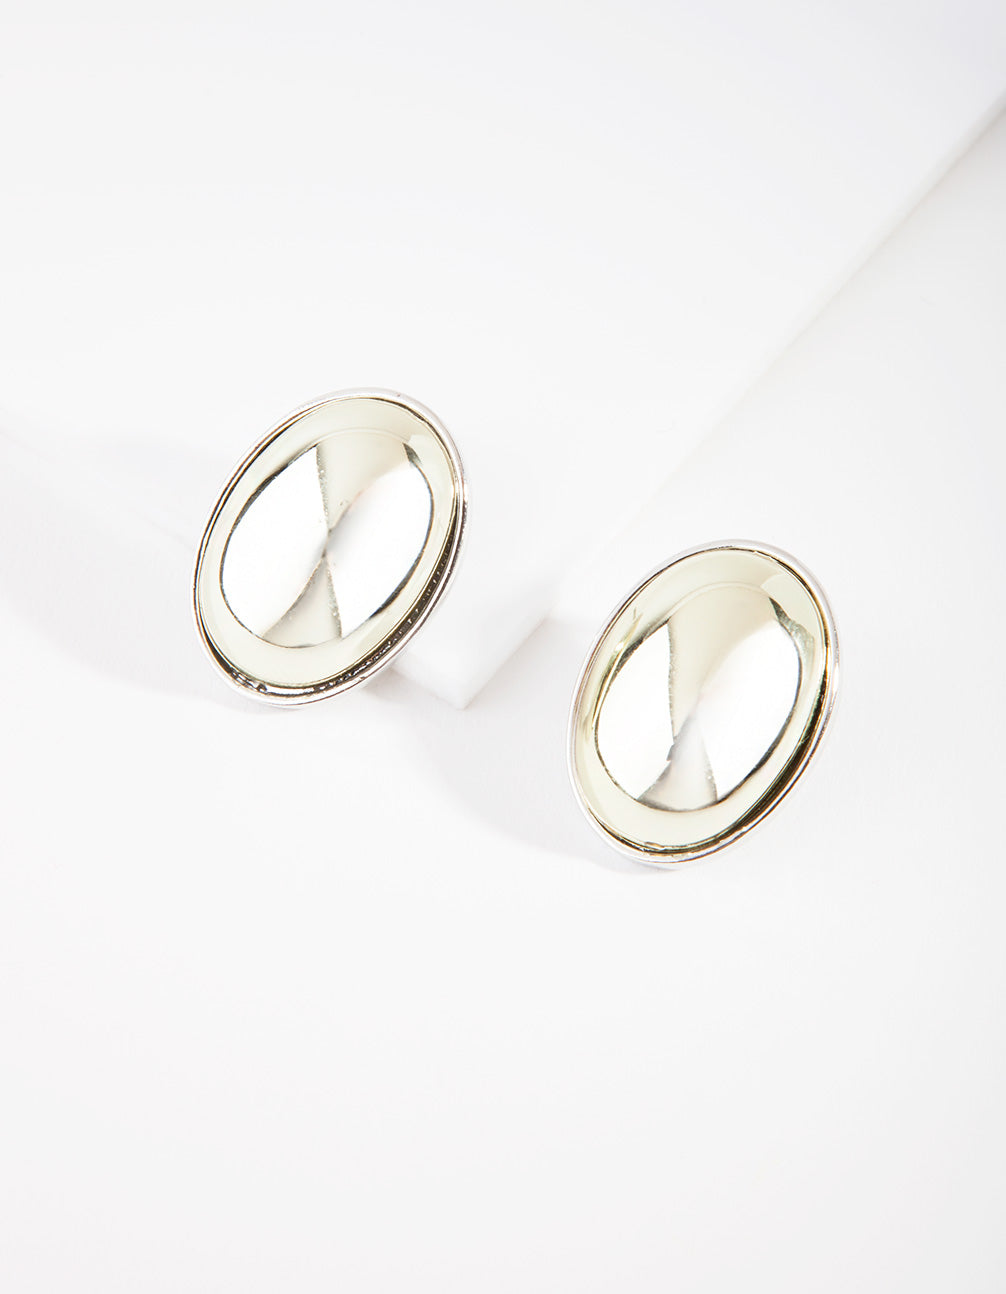 Mixed Metal Oval Dome Stud Earring